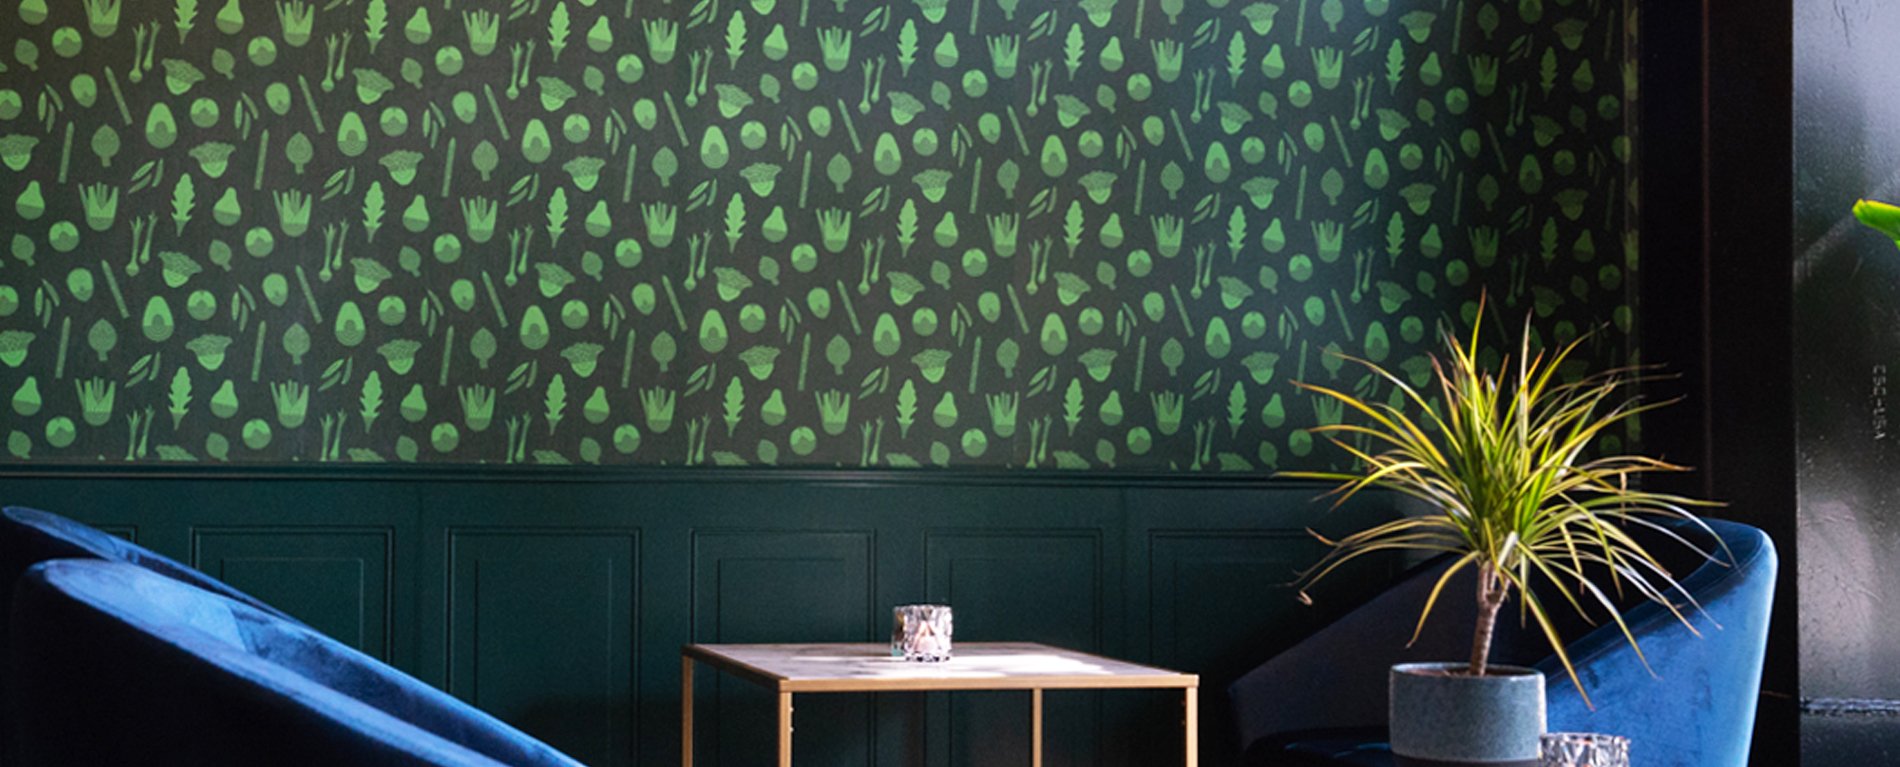 Restaurant Wallpaper Slider